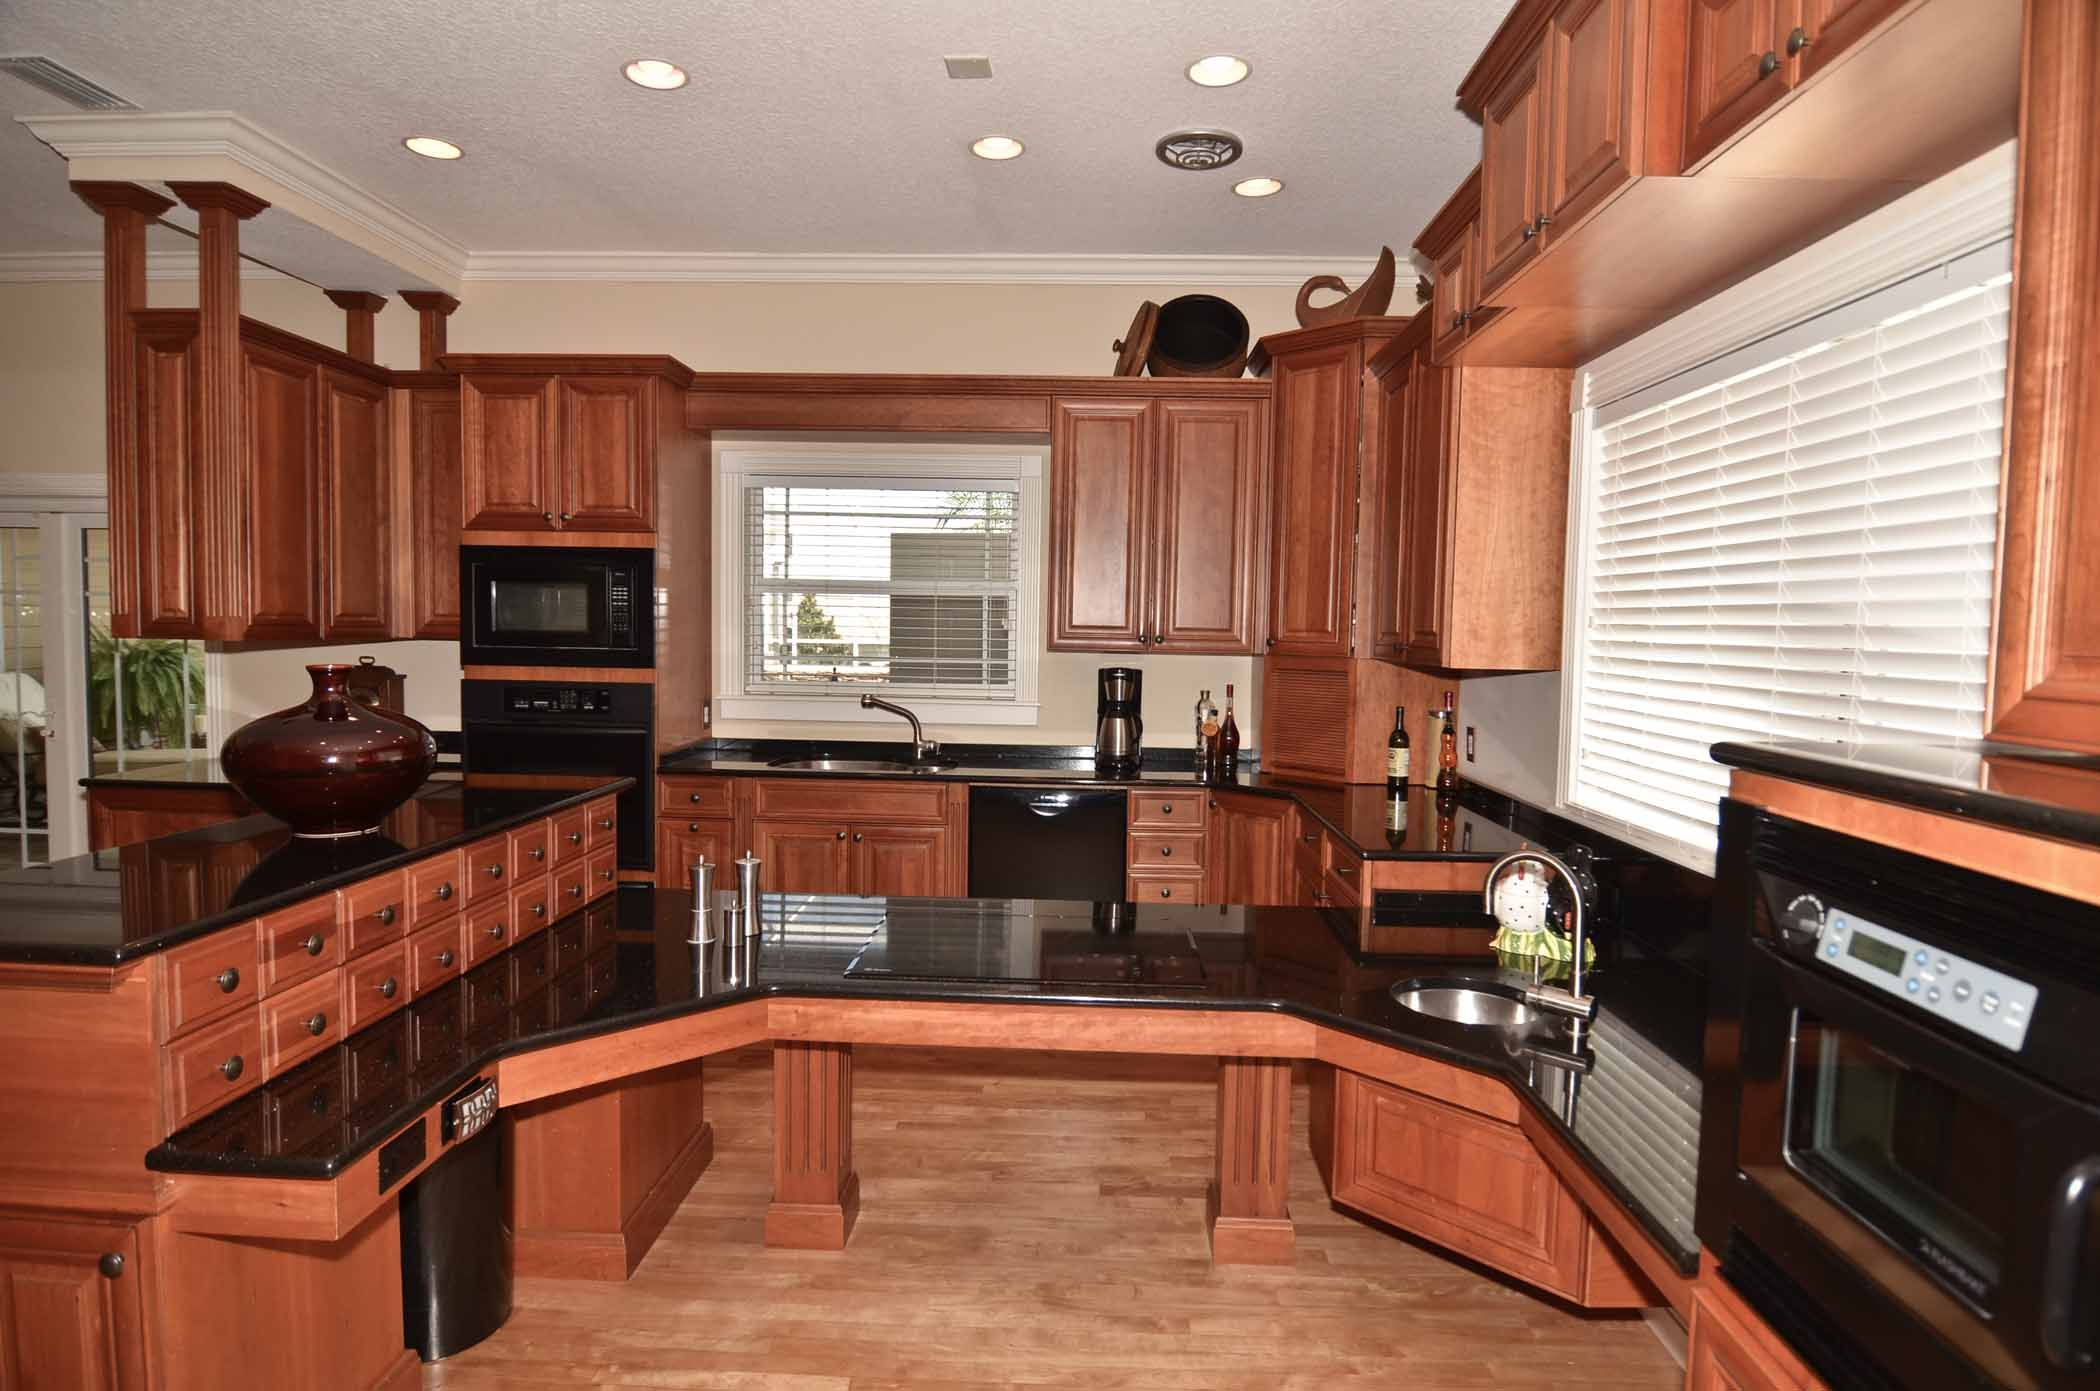 Universal Design Kitchen Cabinets Wheelchair Accessible Housing And Universal Design Homes At